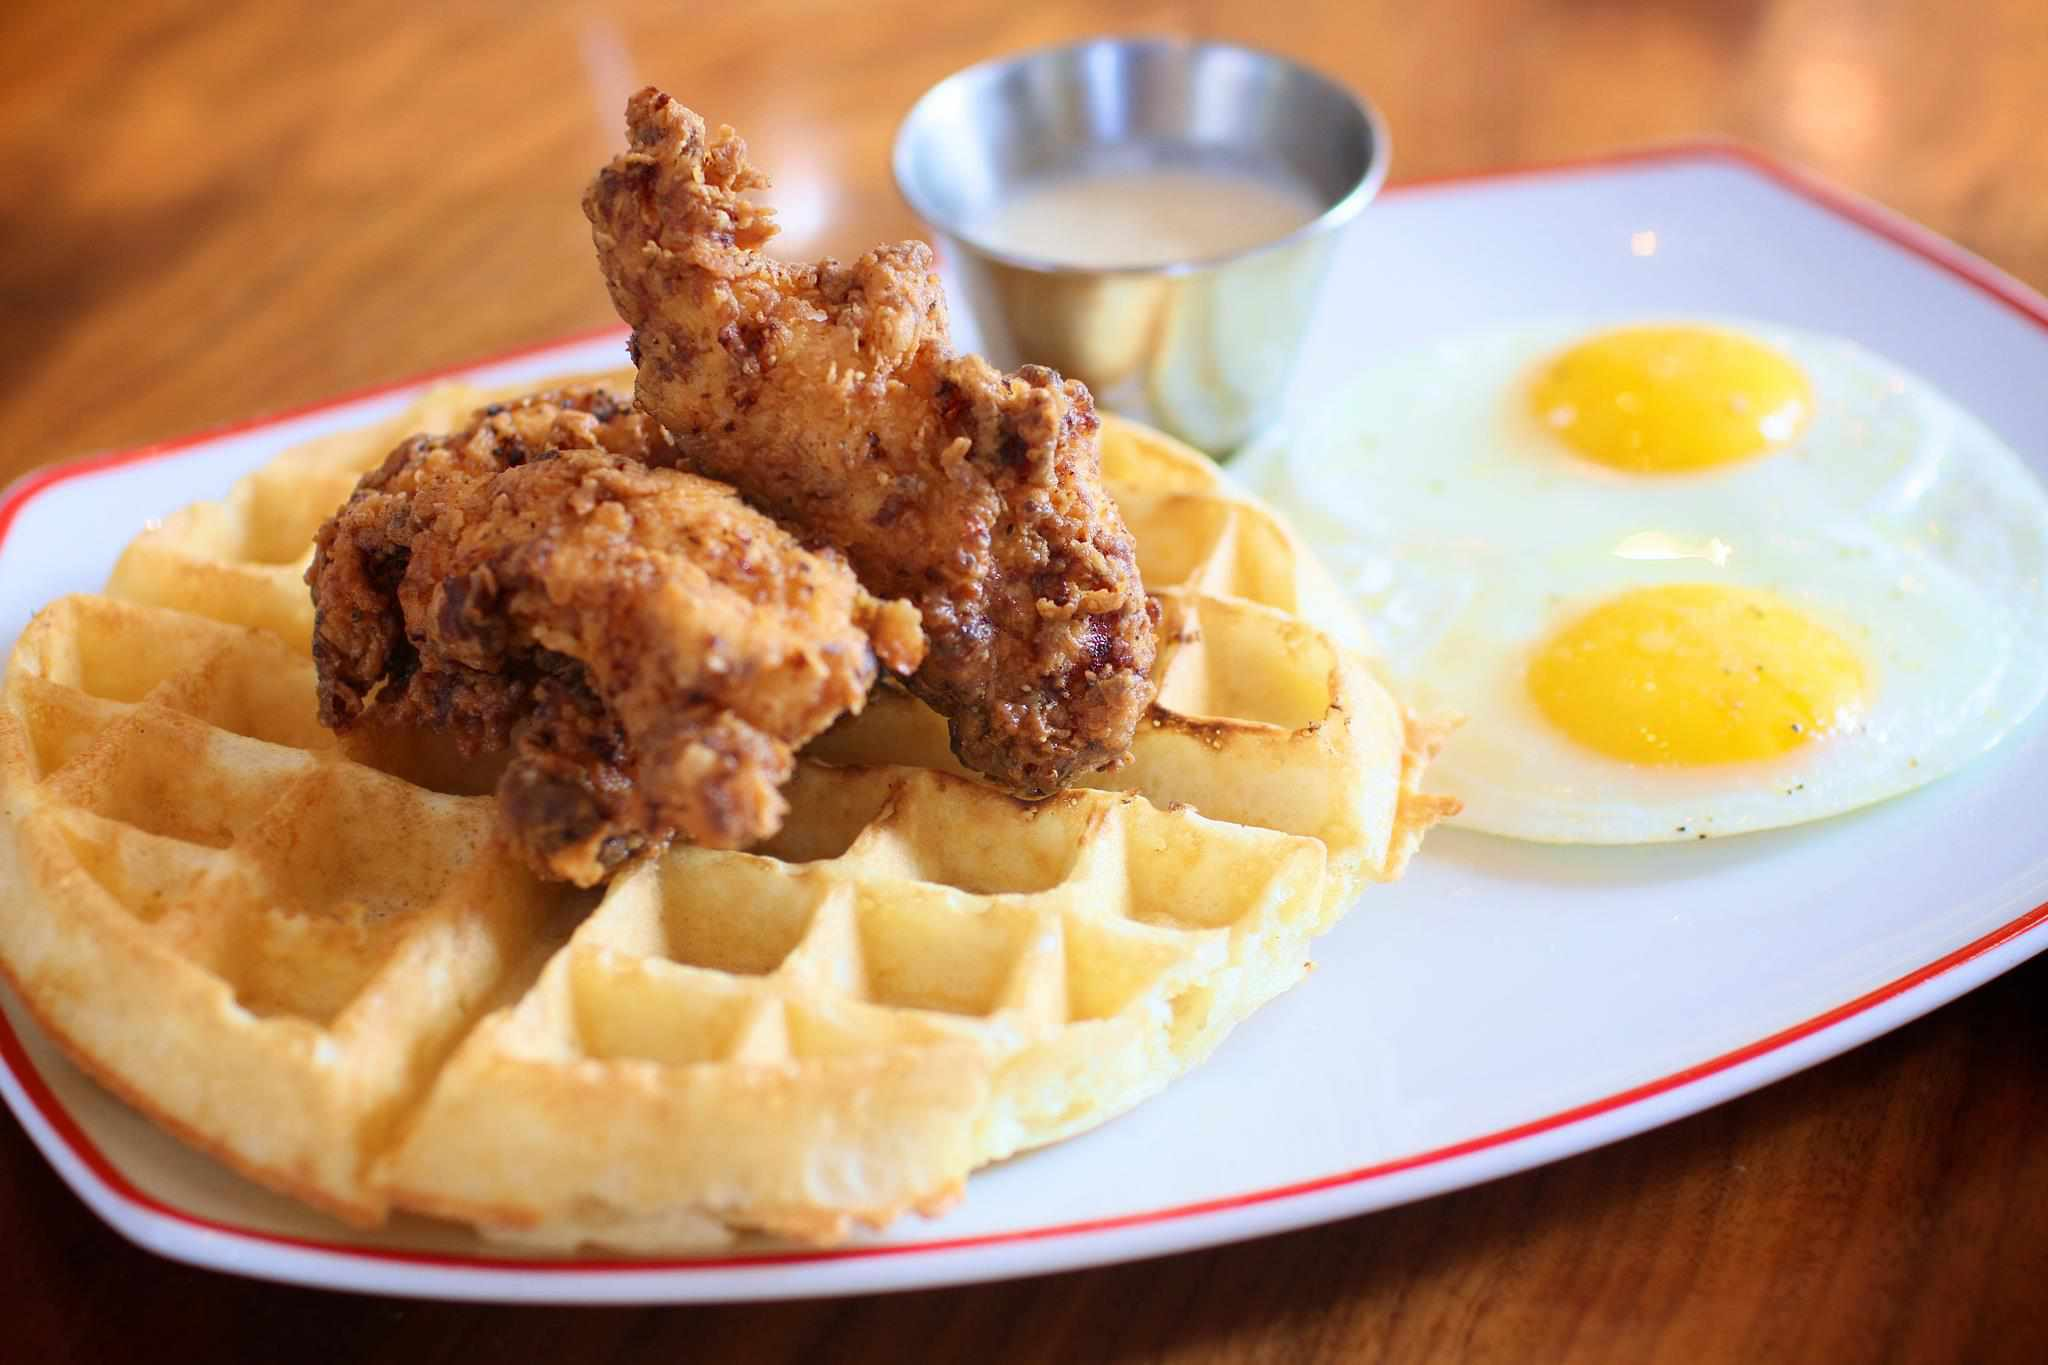 Two sunny side-up eggs and a small waffle with two pieces of chicken on a plate